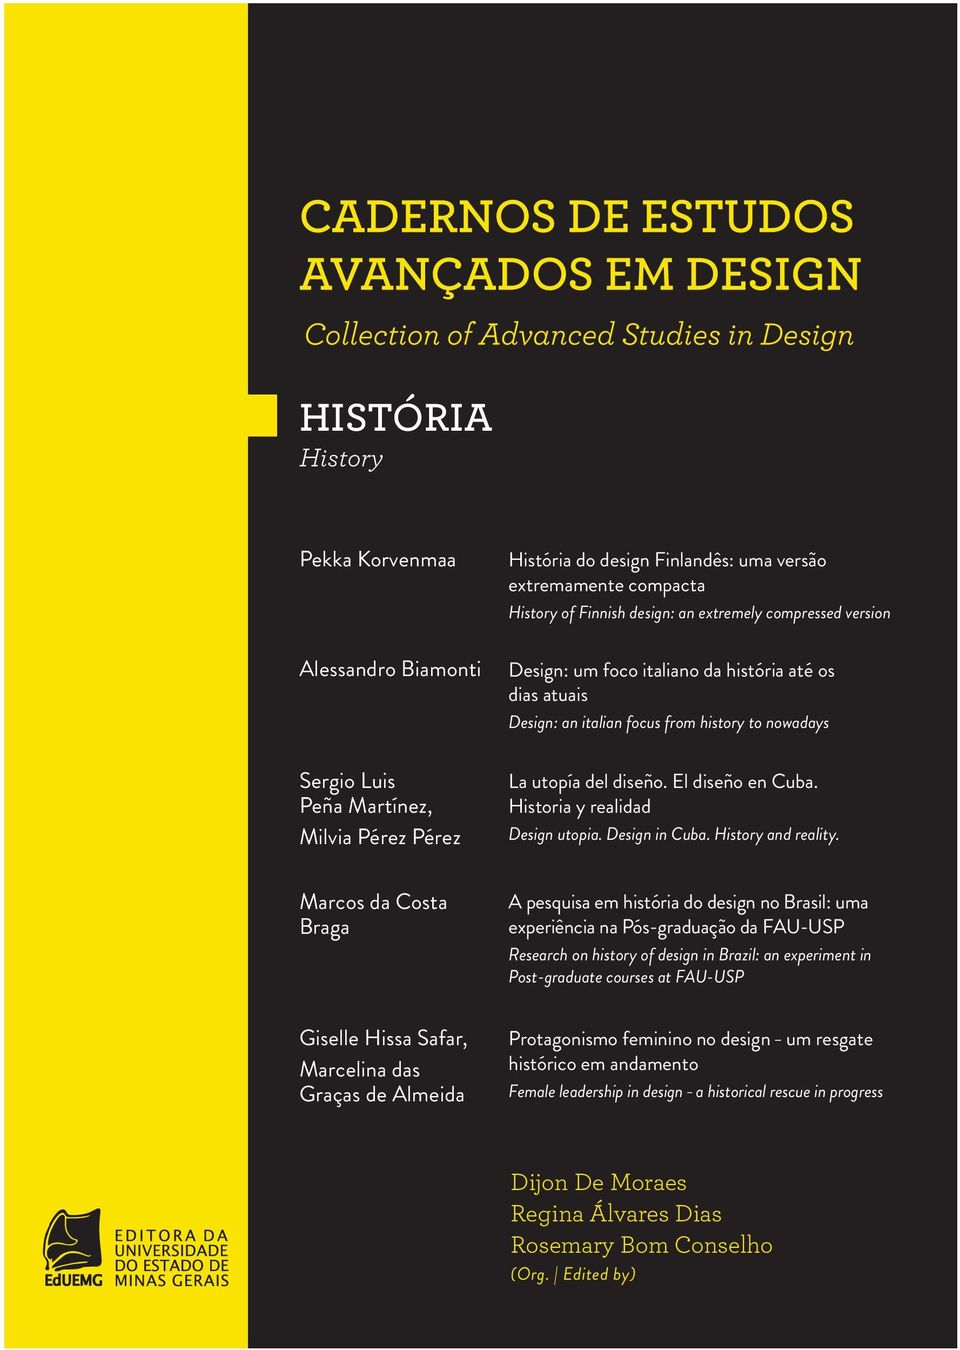 Historia y realidad Design utopia. Design in Cuba. History and reality.